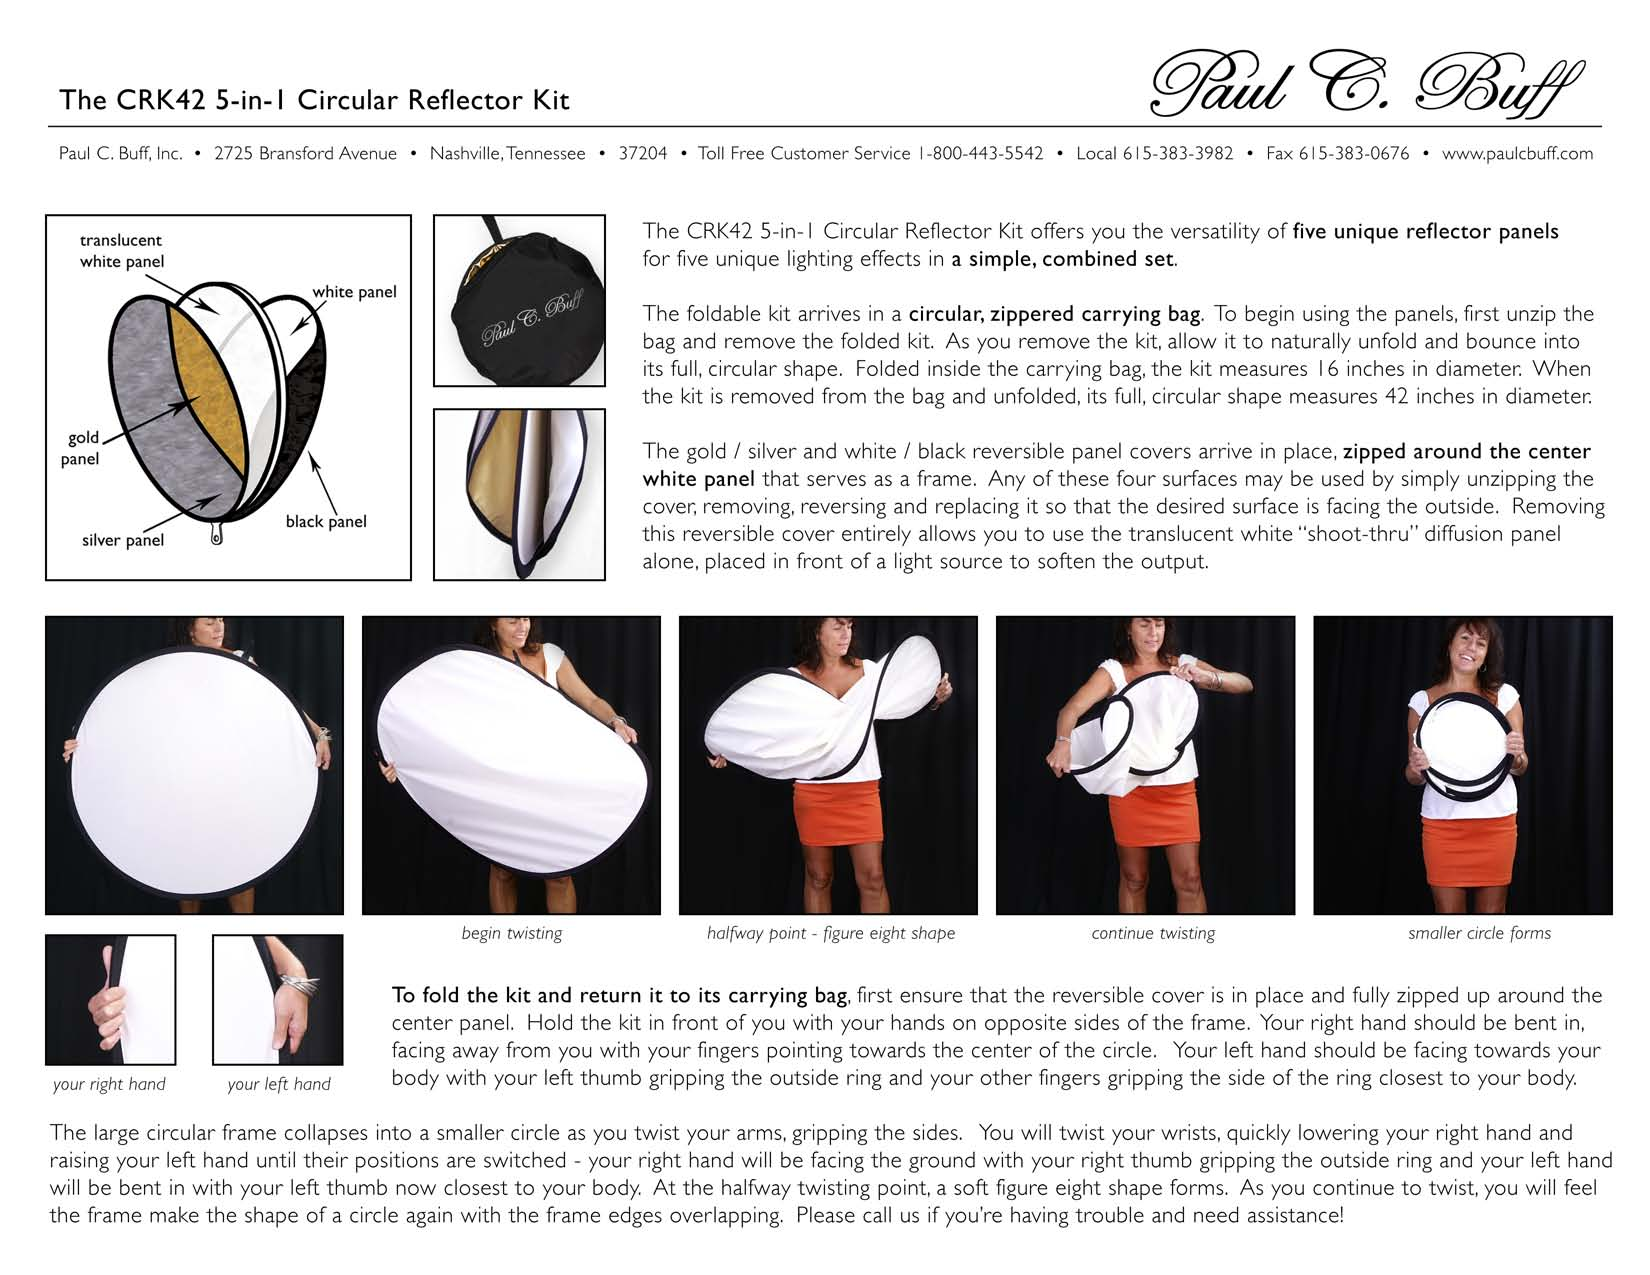 5-in-1 Reflector Kit Instructions